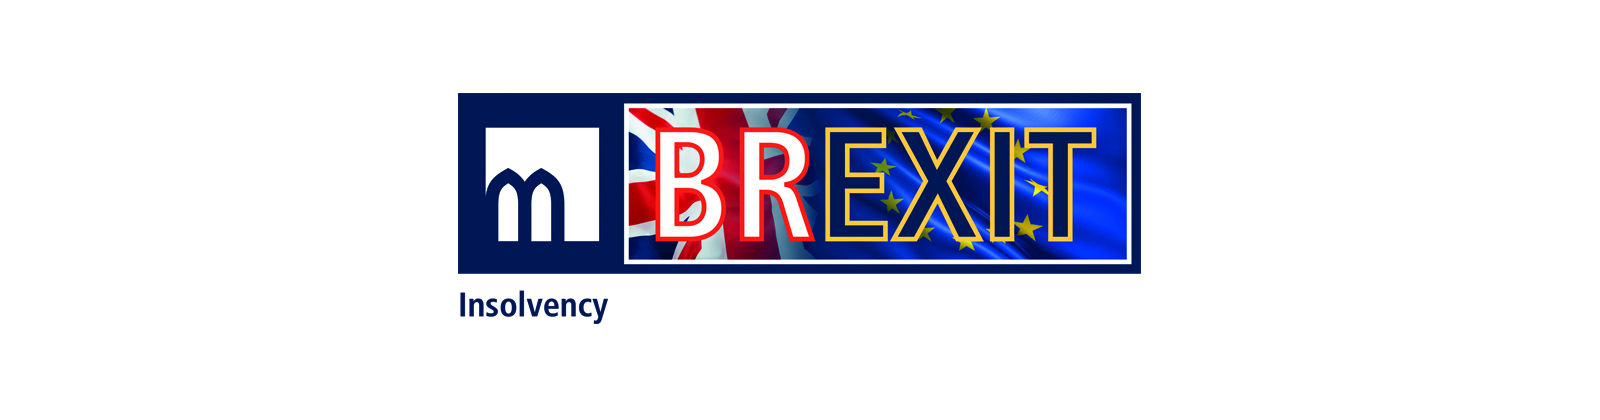 Preparing for Brexit - Insolvency